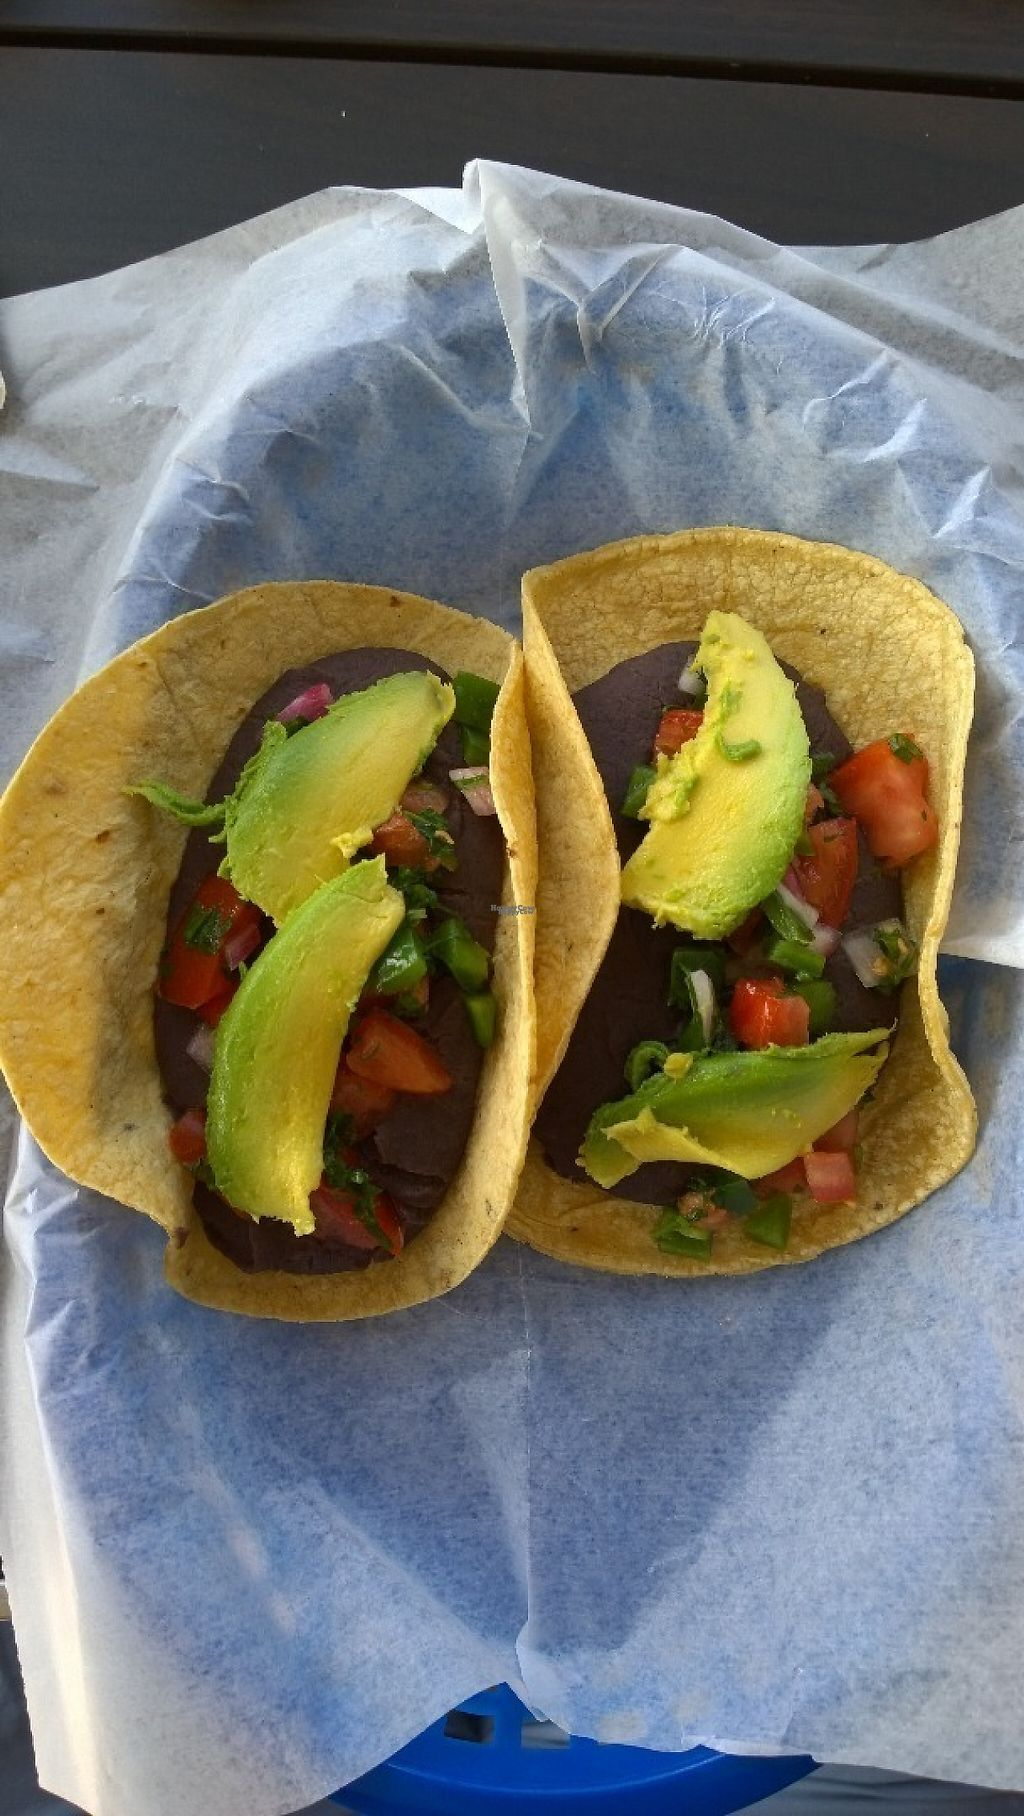 """Photo of Tacodeli  by <a href=""""/members/profile/veggie_htx"""">veggie_htx</a> <br/>Freakin' Vegan tacos: refried beans, pico de gallo, avocado <br/> April 16, 2017  - <a href='/contact/abuse/image/90480/249070'>Report</a>"""